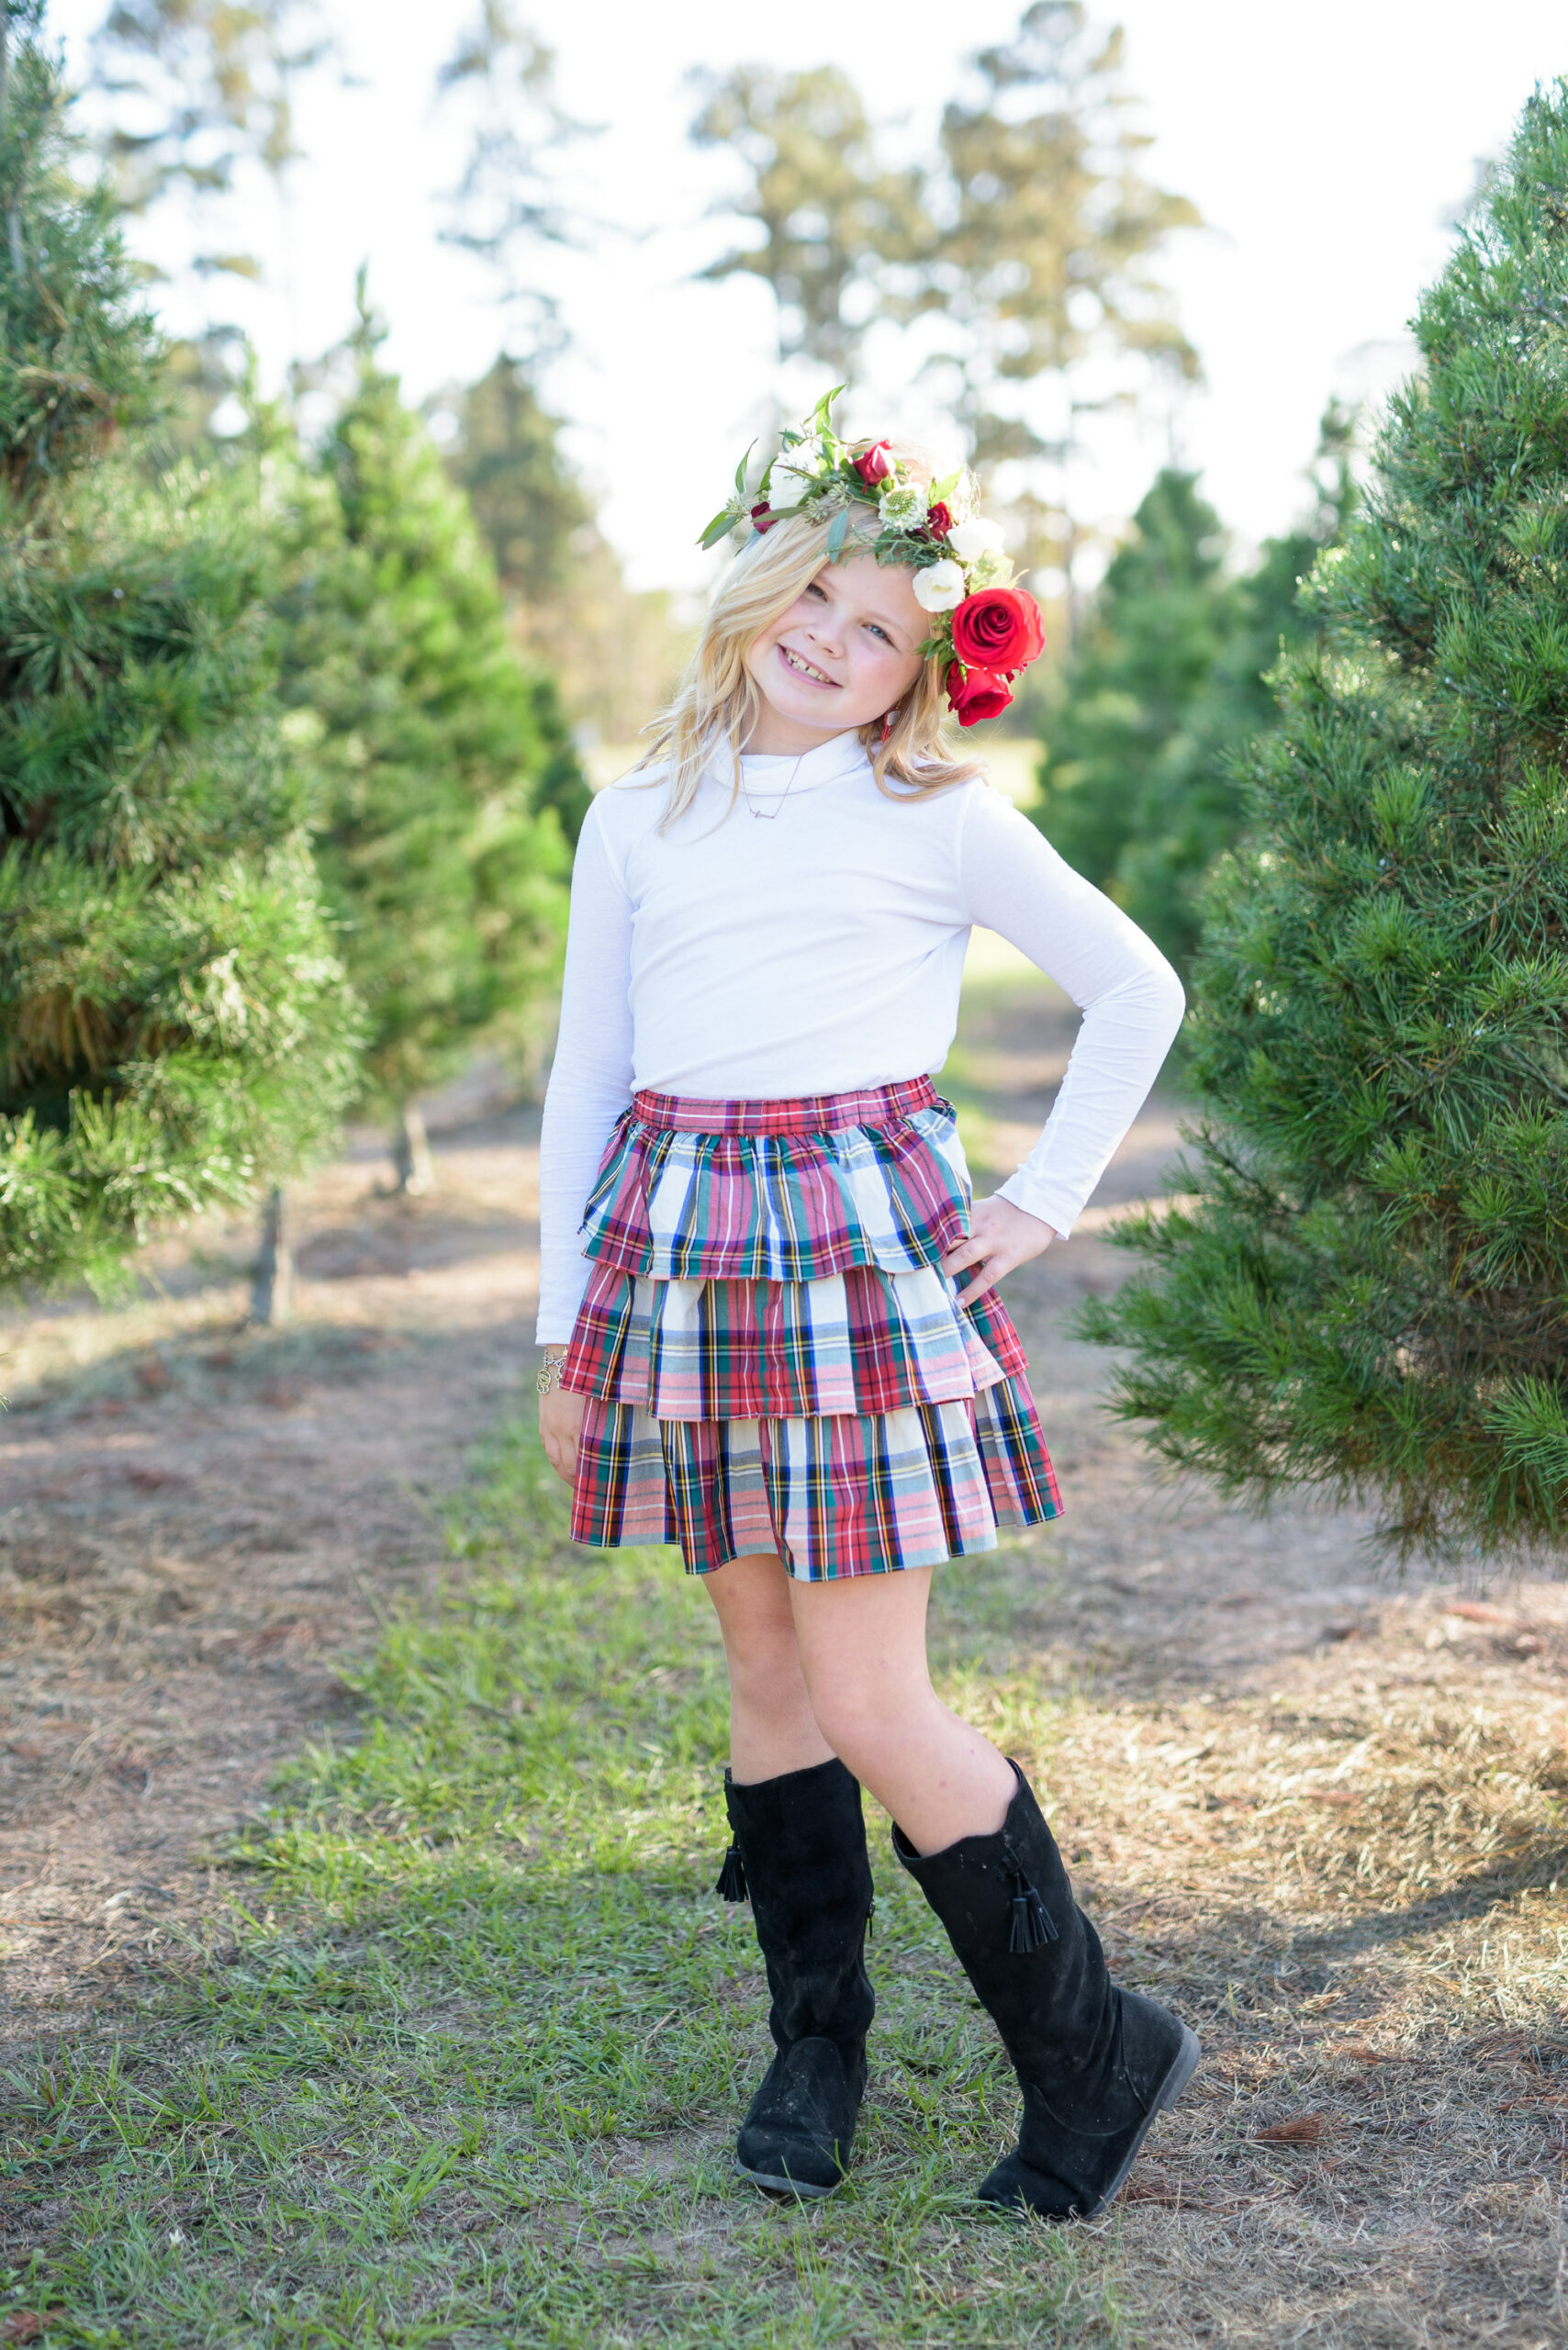 Christmas Tree Farm Photos by popular Houston lifestyle blog, Fancy Ashley: image of a girl standing in a row of pine trees and wearing a white long sleeve turtleneck shirt, plaid ruffle tier skirt, floral crown and black suede boots.